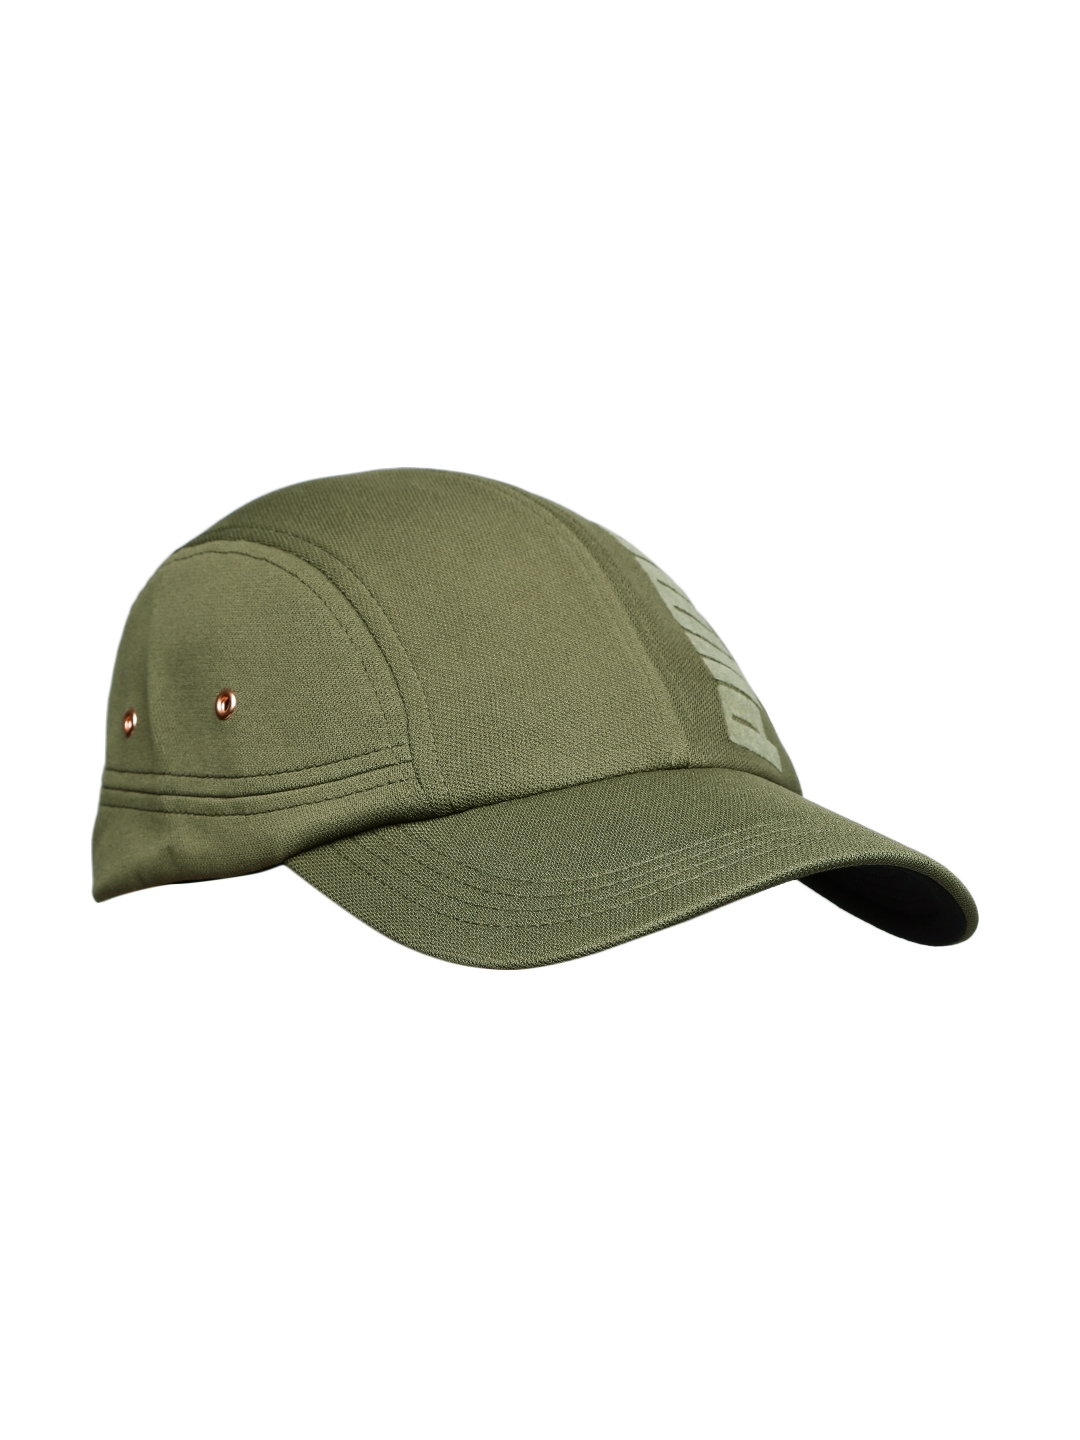 9959645c6 Buy Puma Women Olive Green Solid Baseball Cap - Caps for Women ...